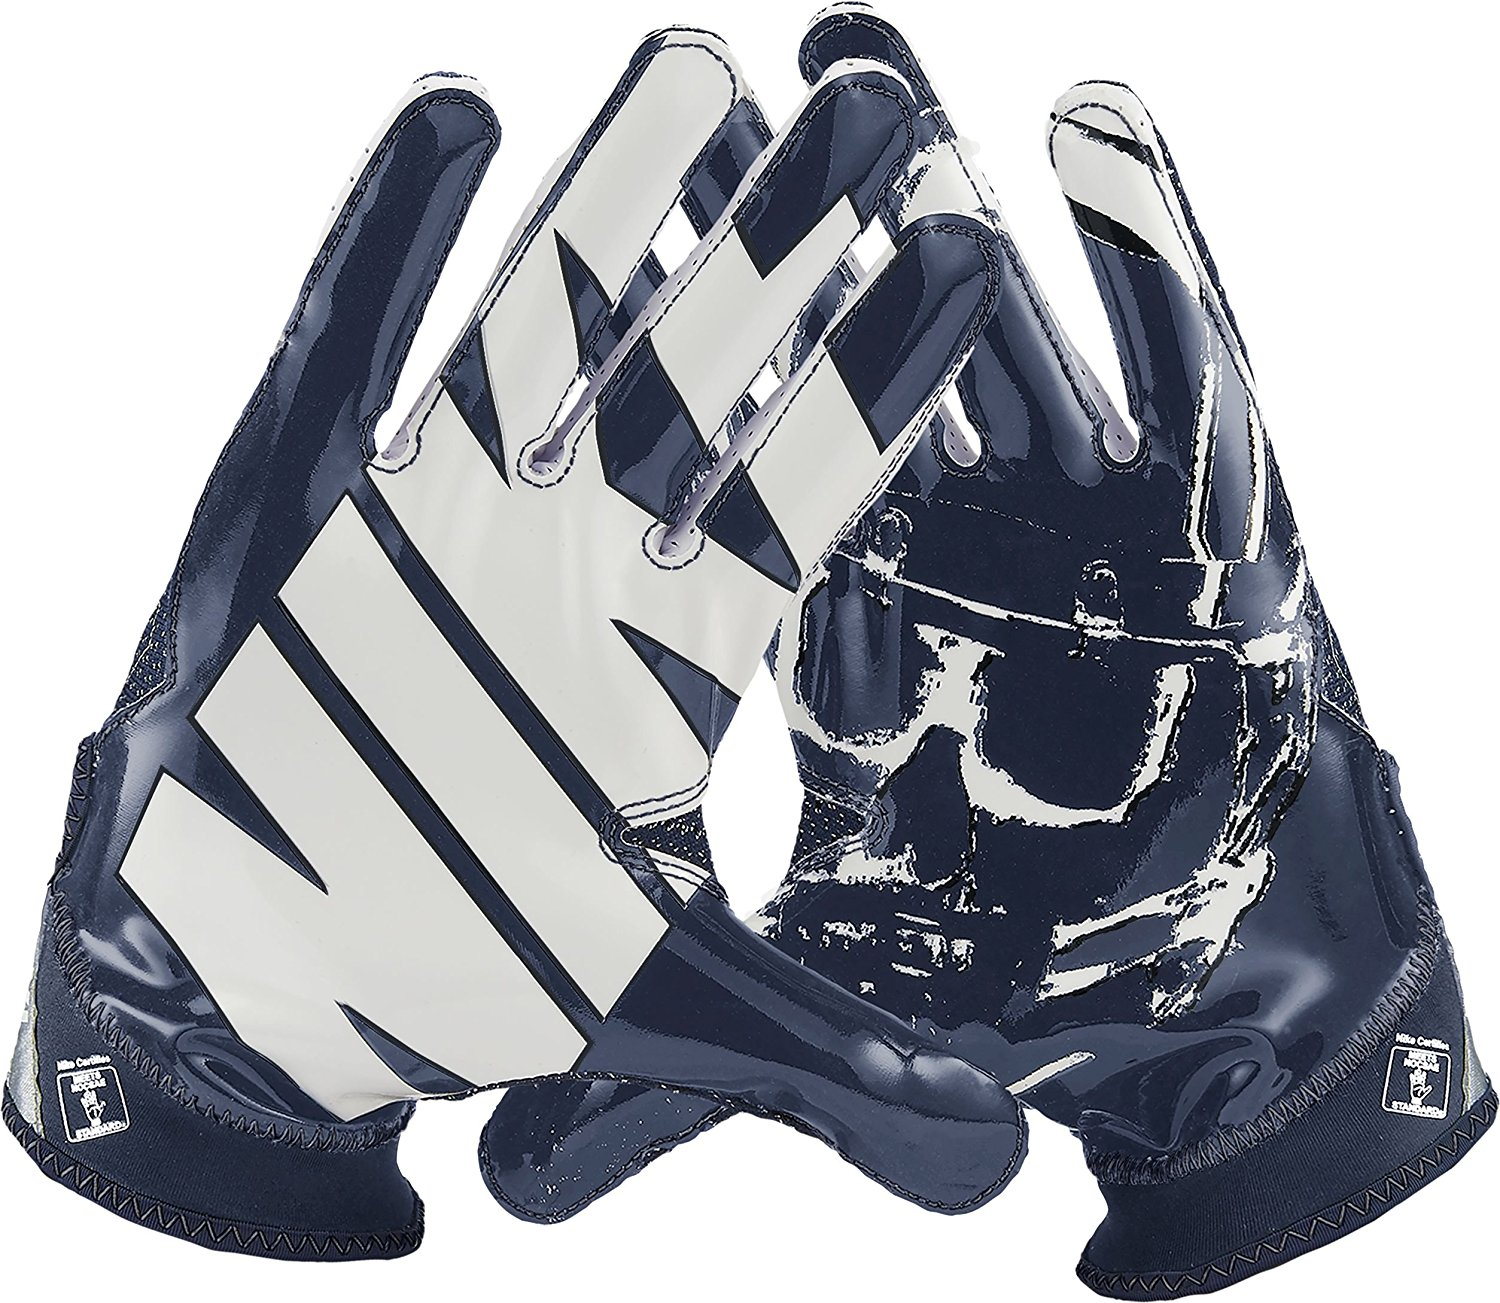 Nike Superbad 4.0 Football Gloves Black//Wolf Grey//Metallic Silver Youth Large